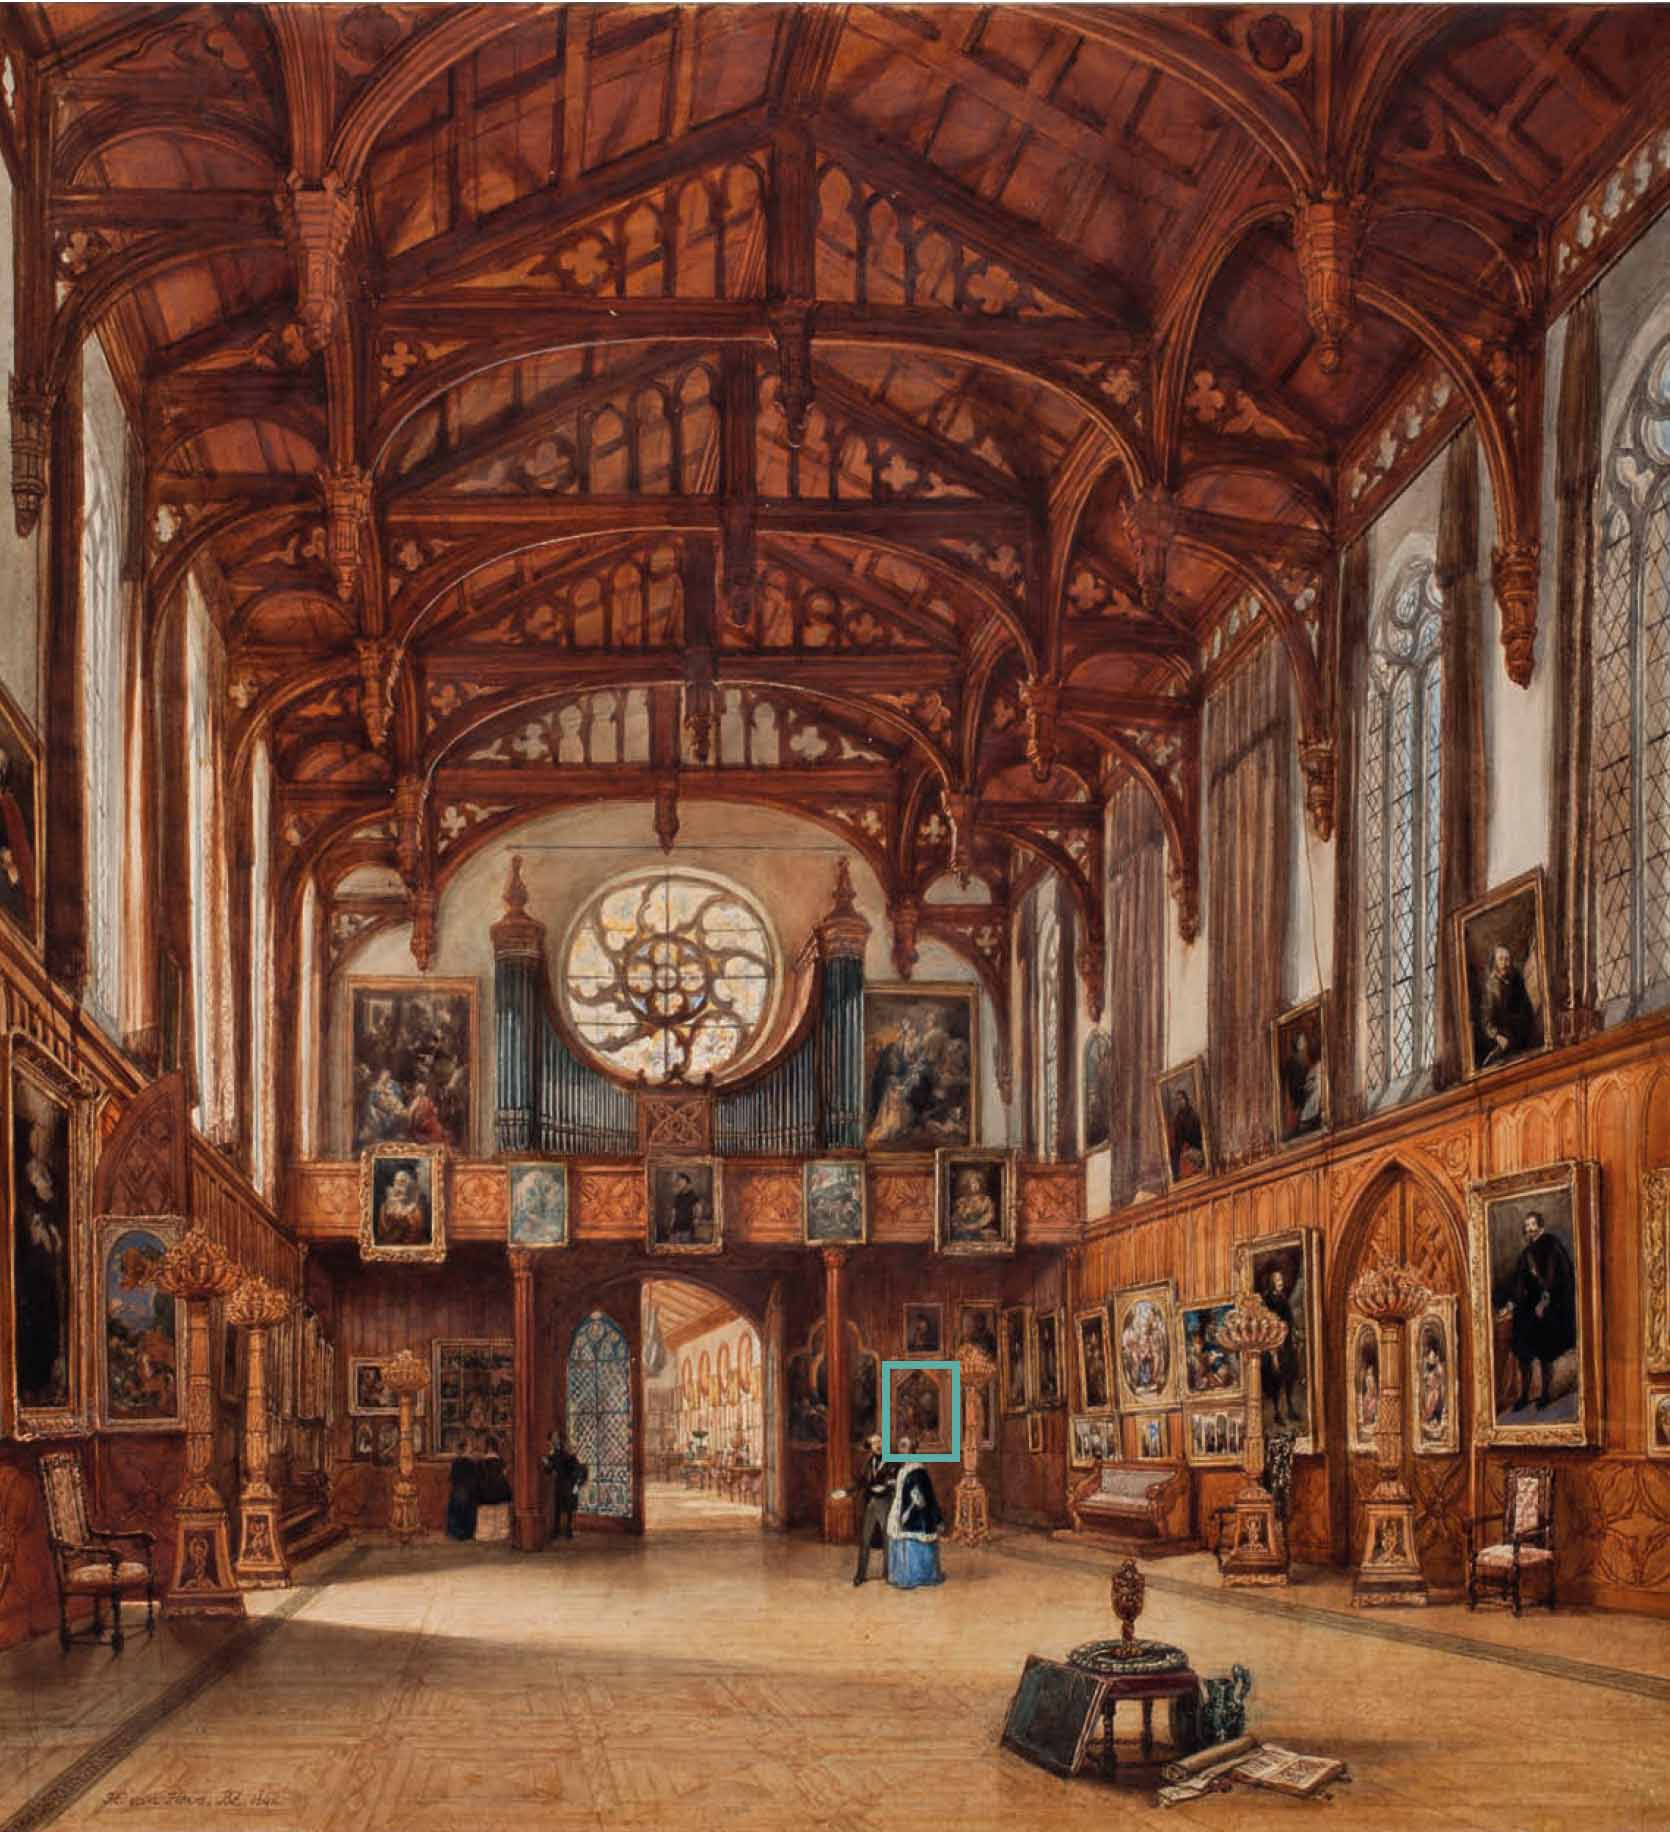 The Art Collection of Willem II, in the Gothic Hall, Kneuterdijk Palace, The Hague. Watercolour by Huib van Hove, 1842 © Royal Collections, the Netherlands, www.koninklijkeverzamelingen.nl